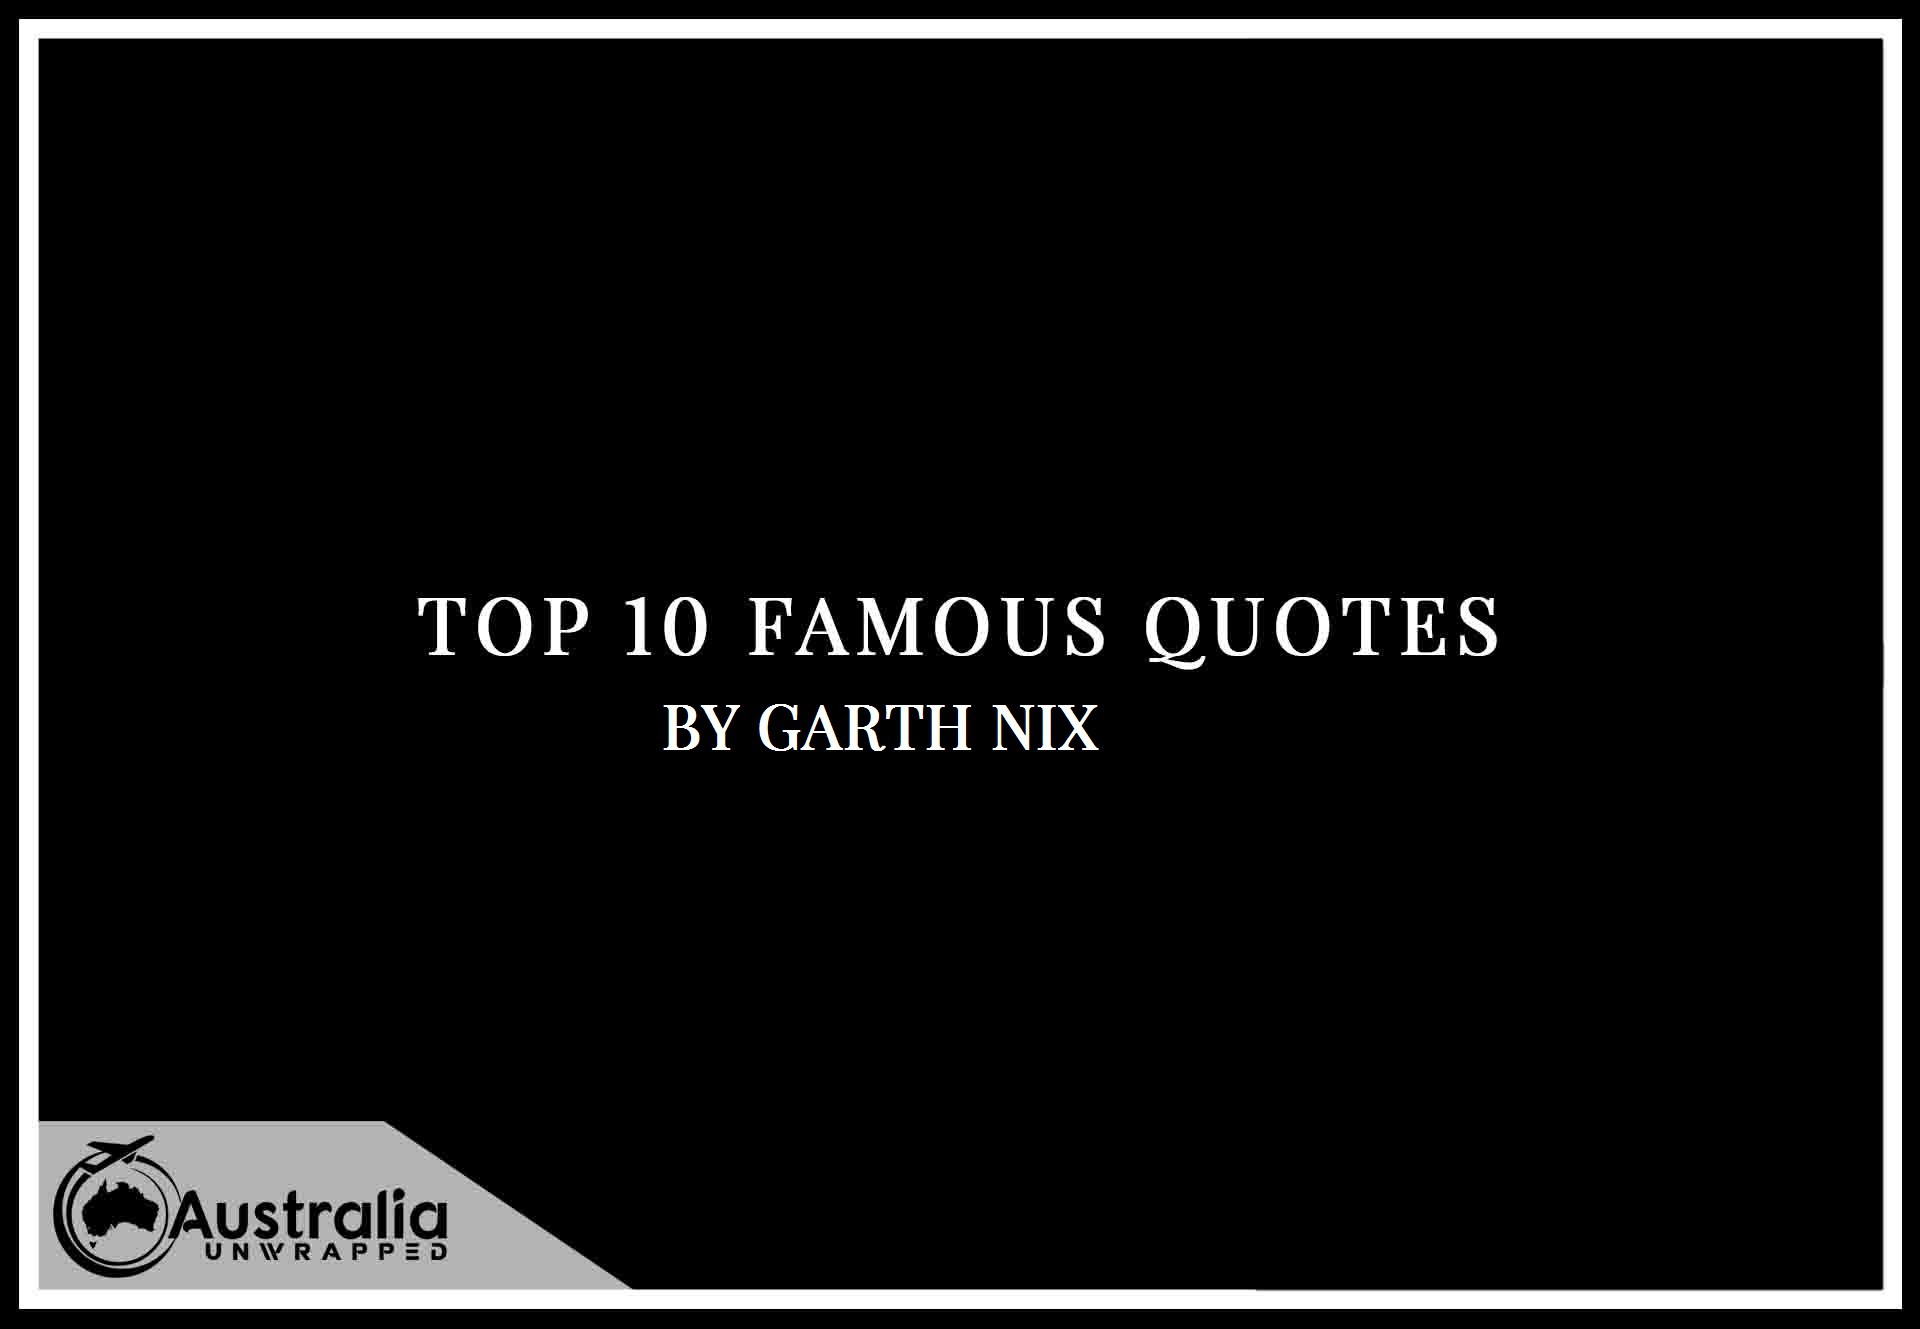 Garth Nix's Top 10 Popular and Famous Quotes